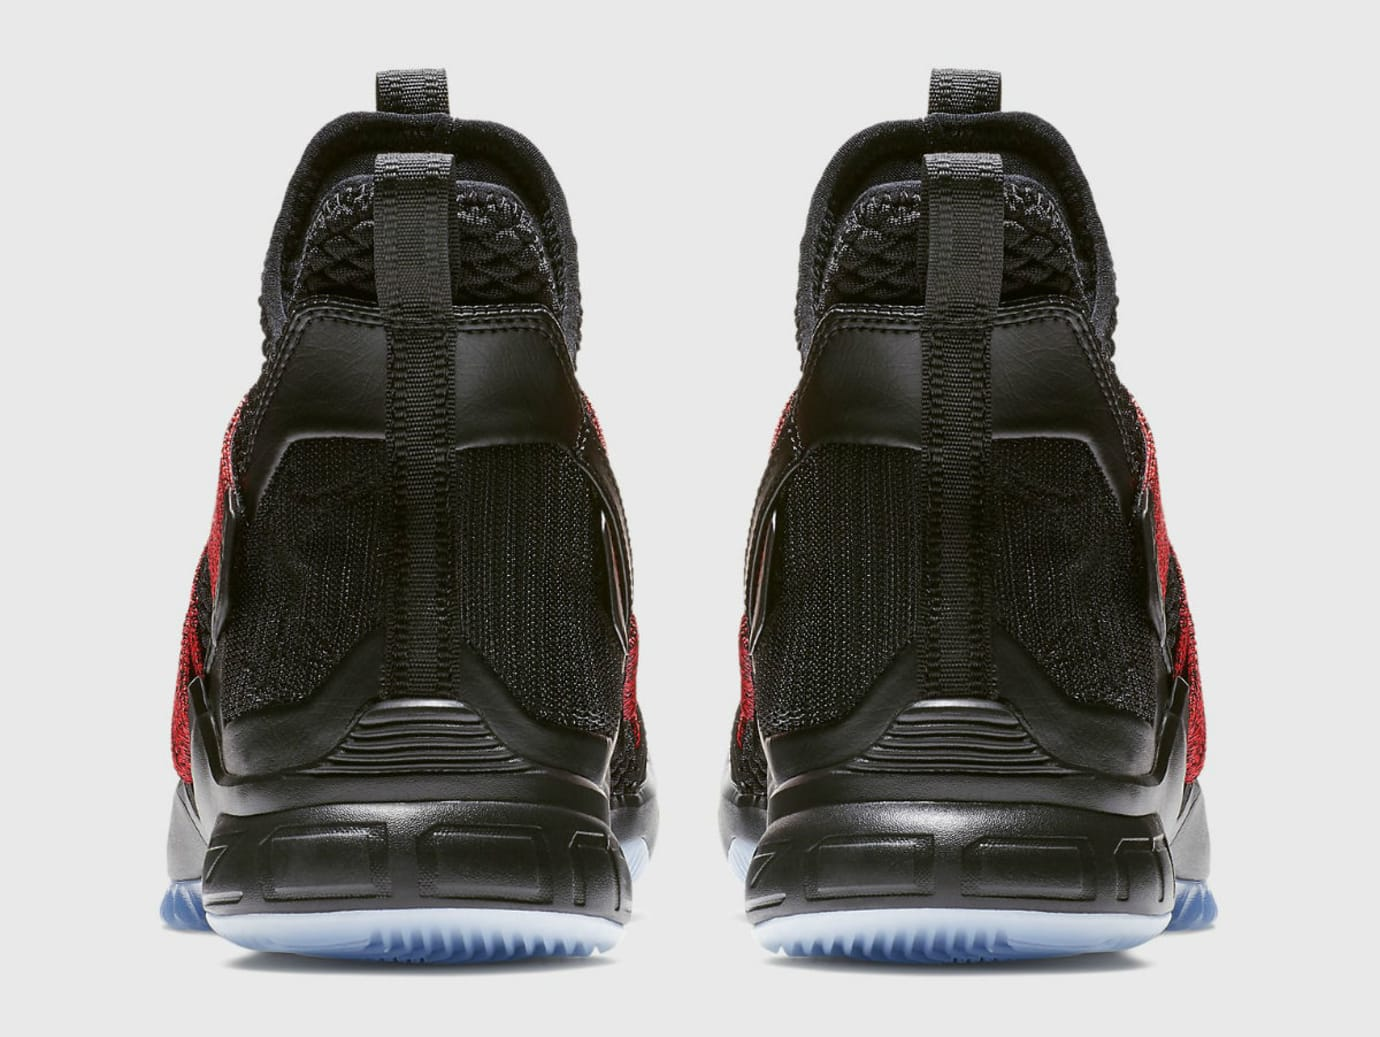 new arrival bd59c ea719 Image via Nike Nike LeBron Soldier 12 XII Bred Release Date AO2609-003 Heel